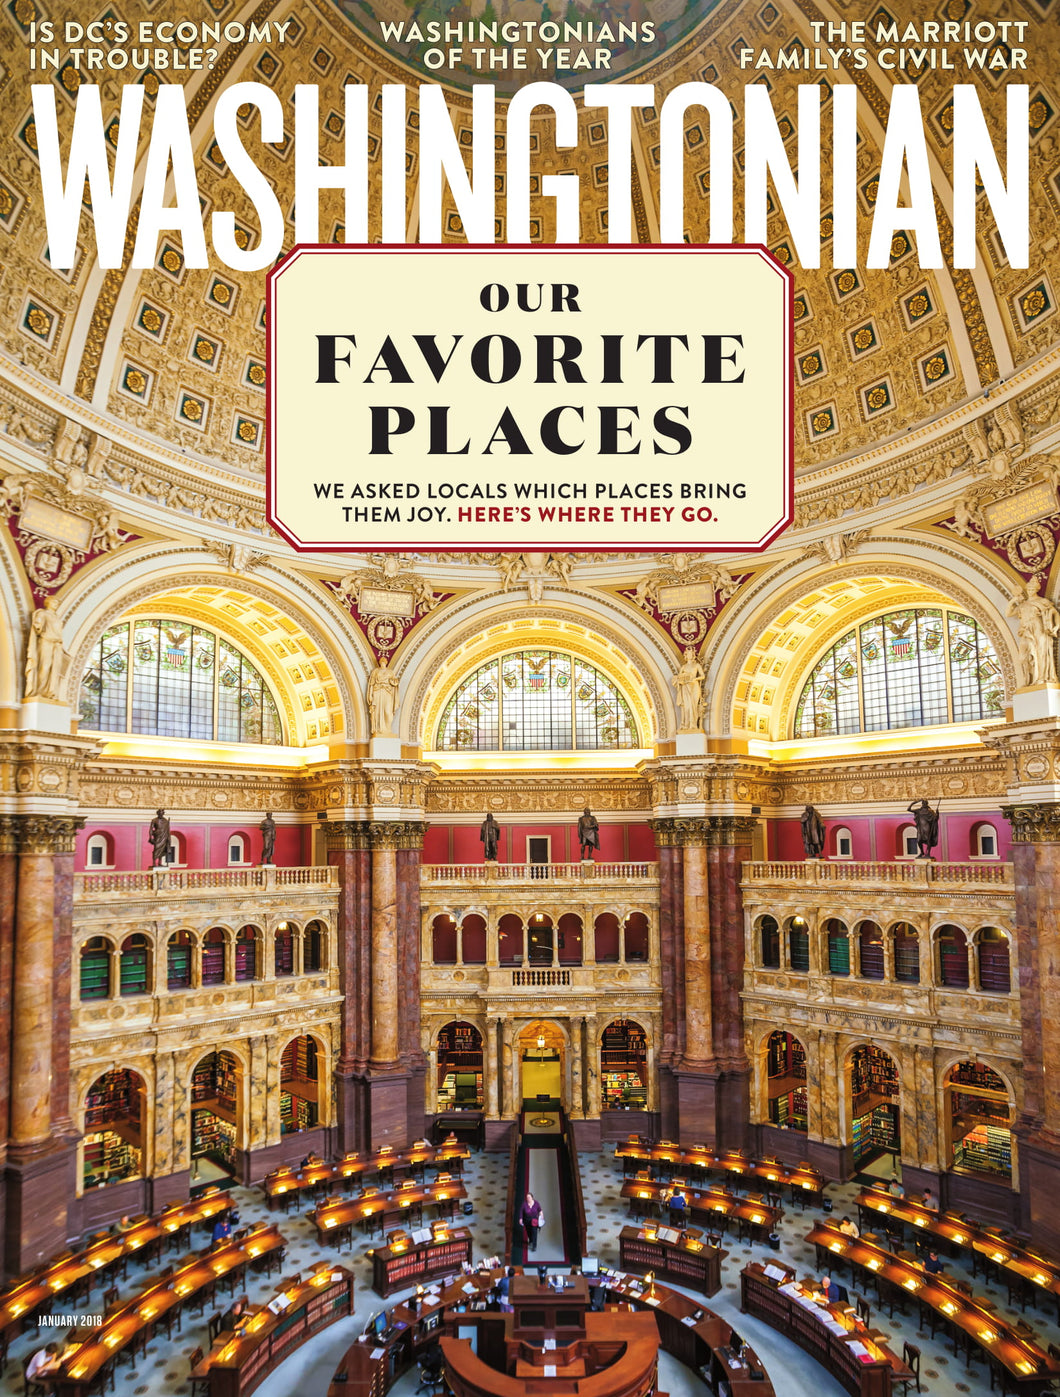 Washingtonian: January 2018 - Favorite Places